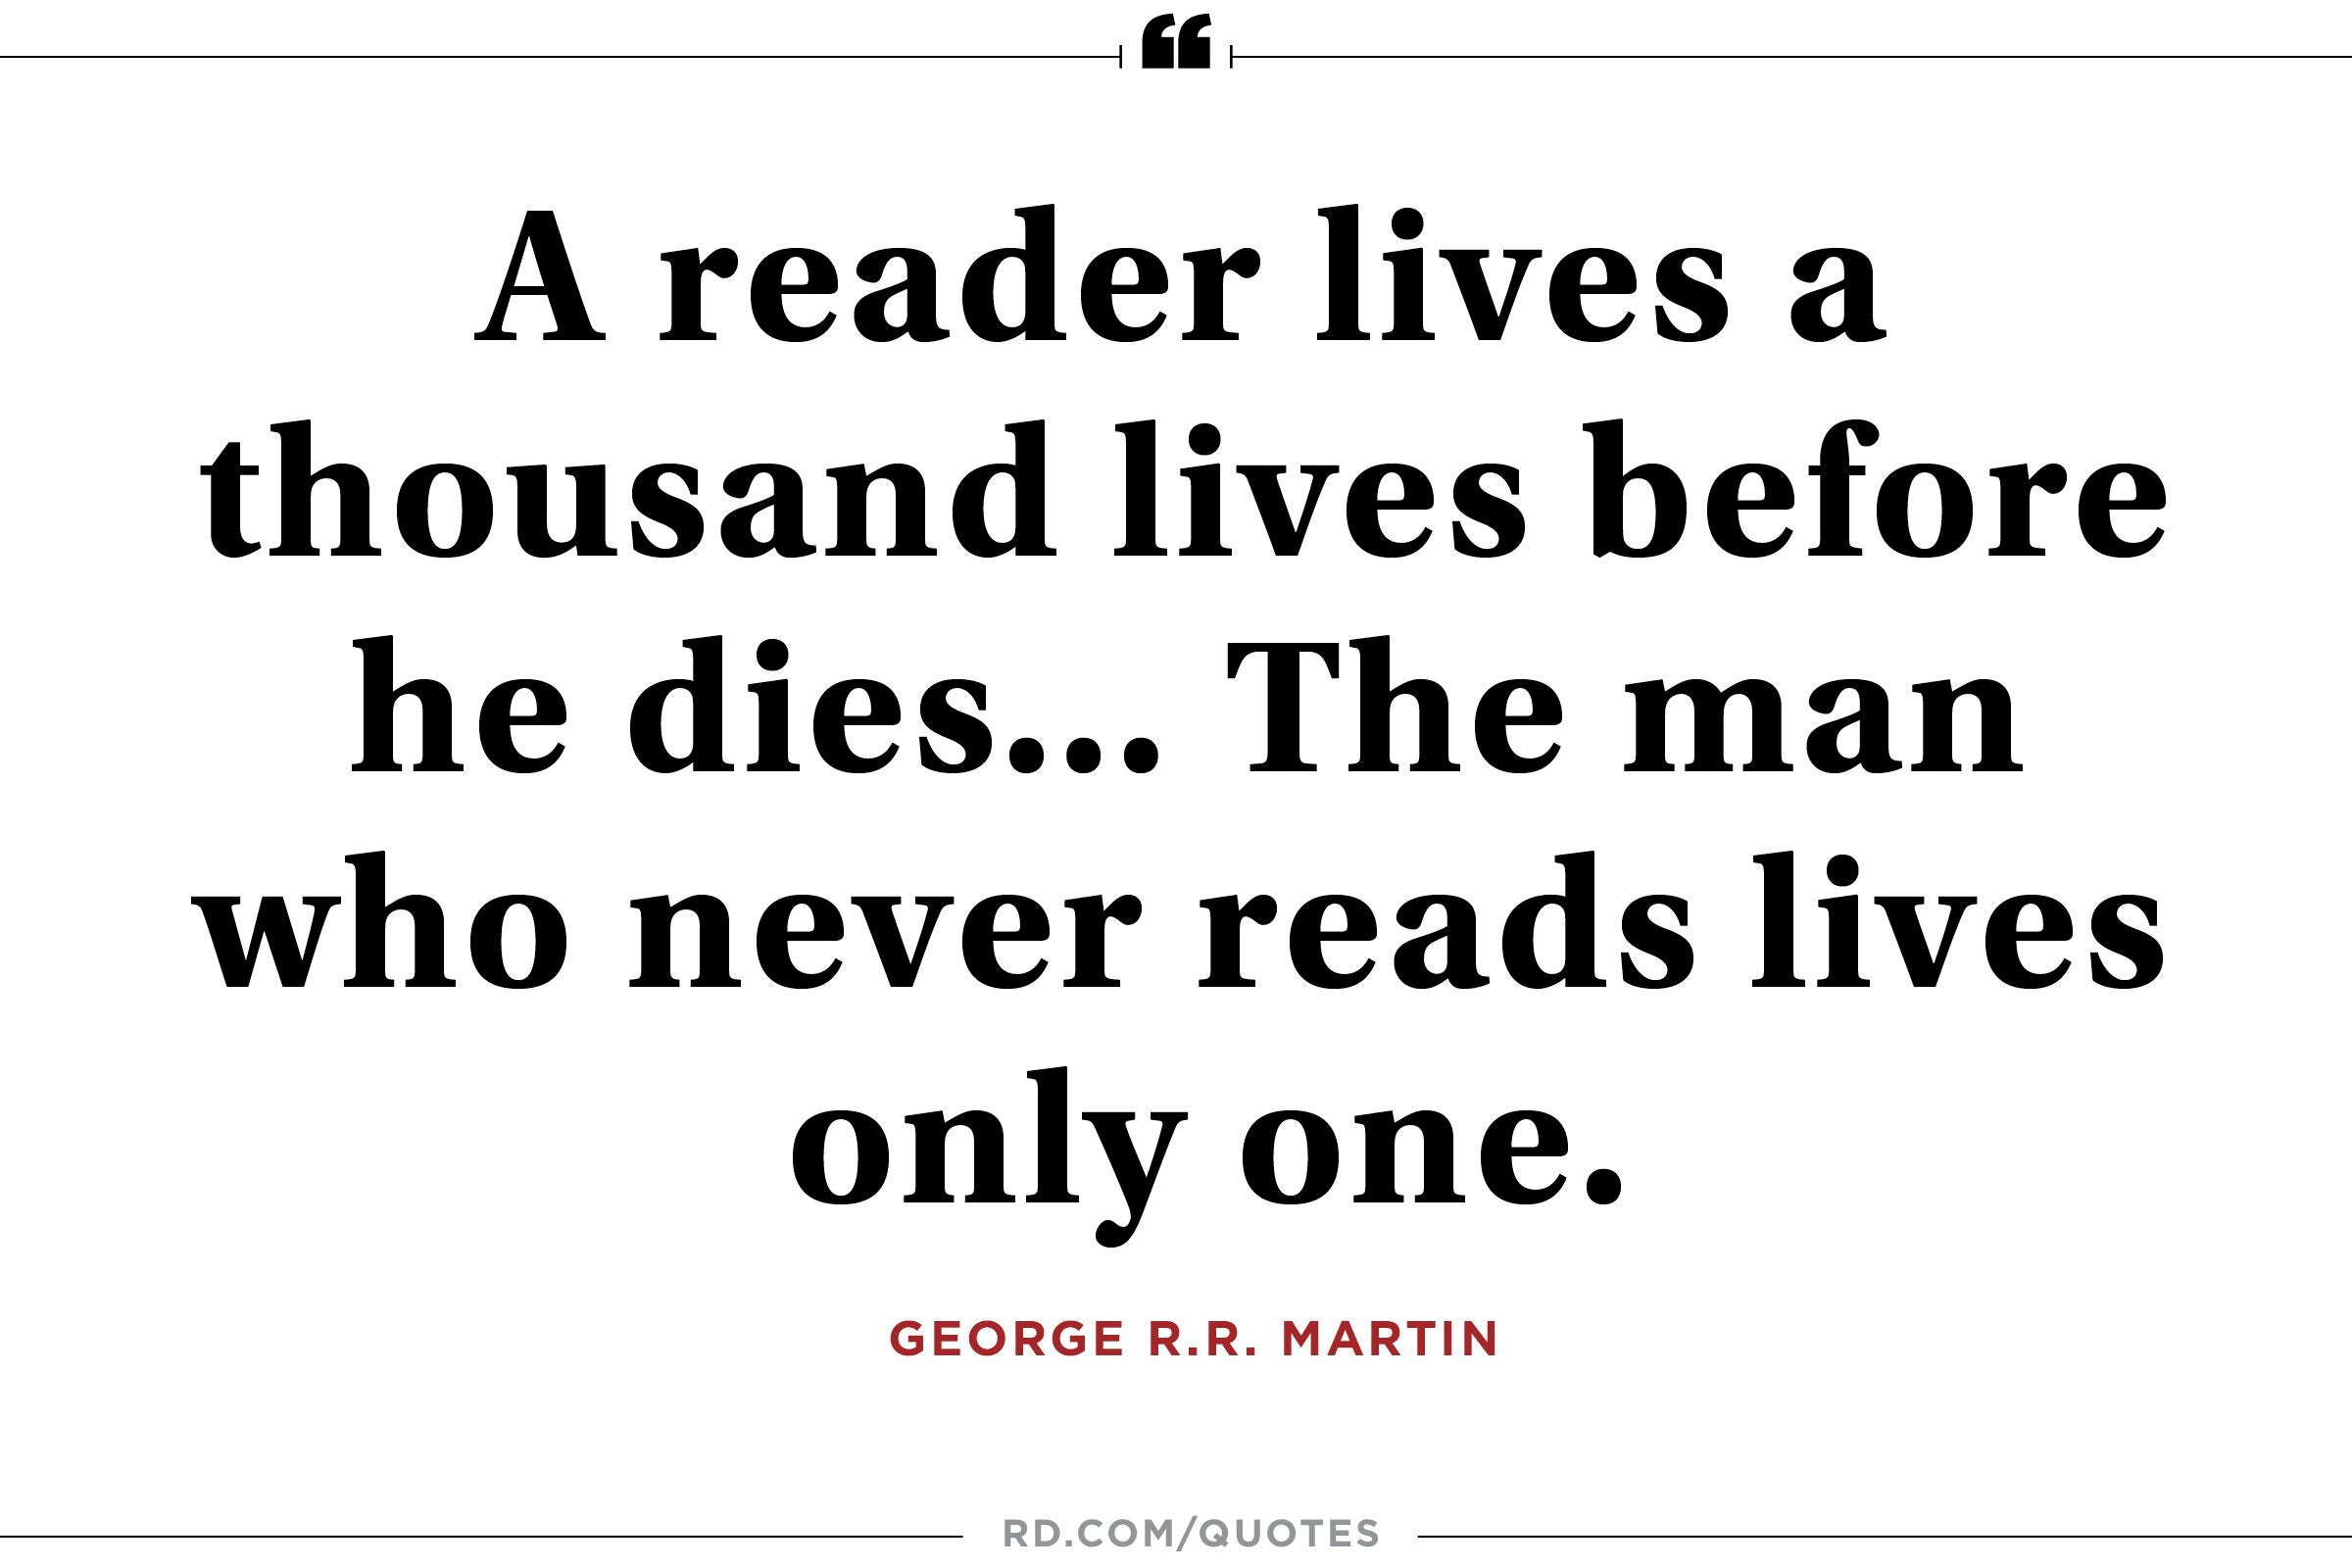 Text reads: A reader lives a thousand lives before he dies...The man who never reads lives only one.